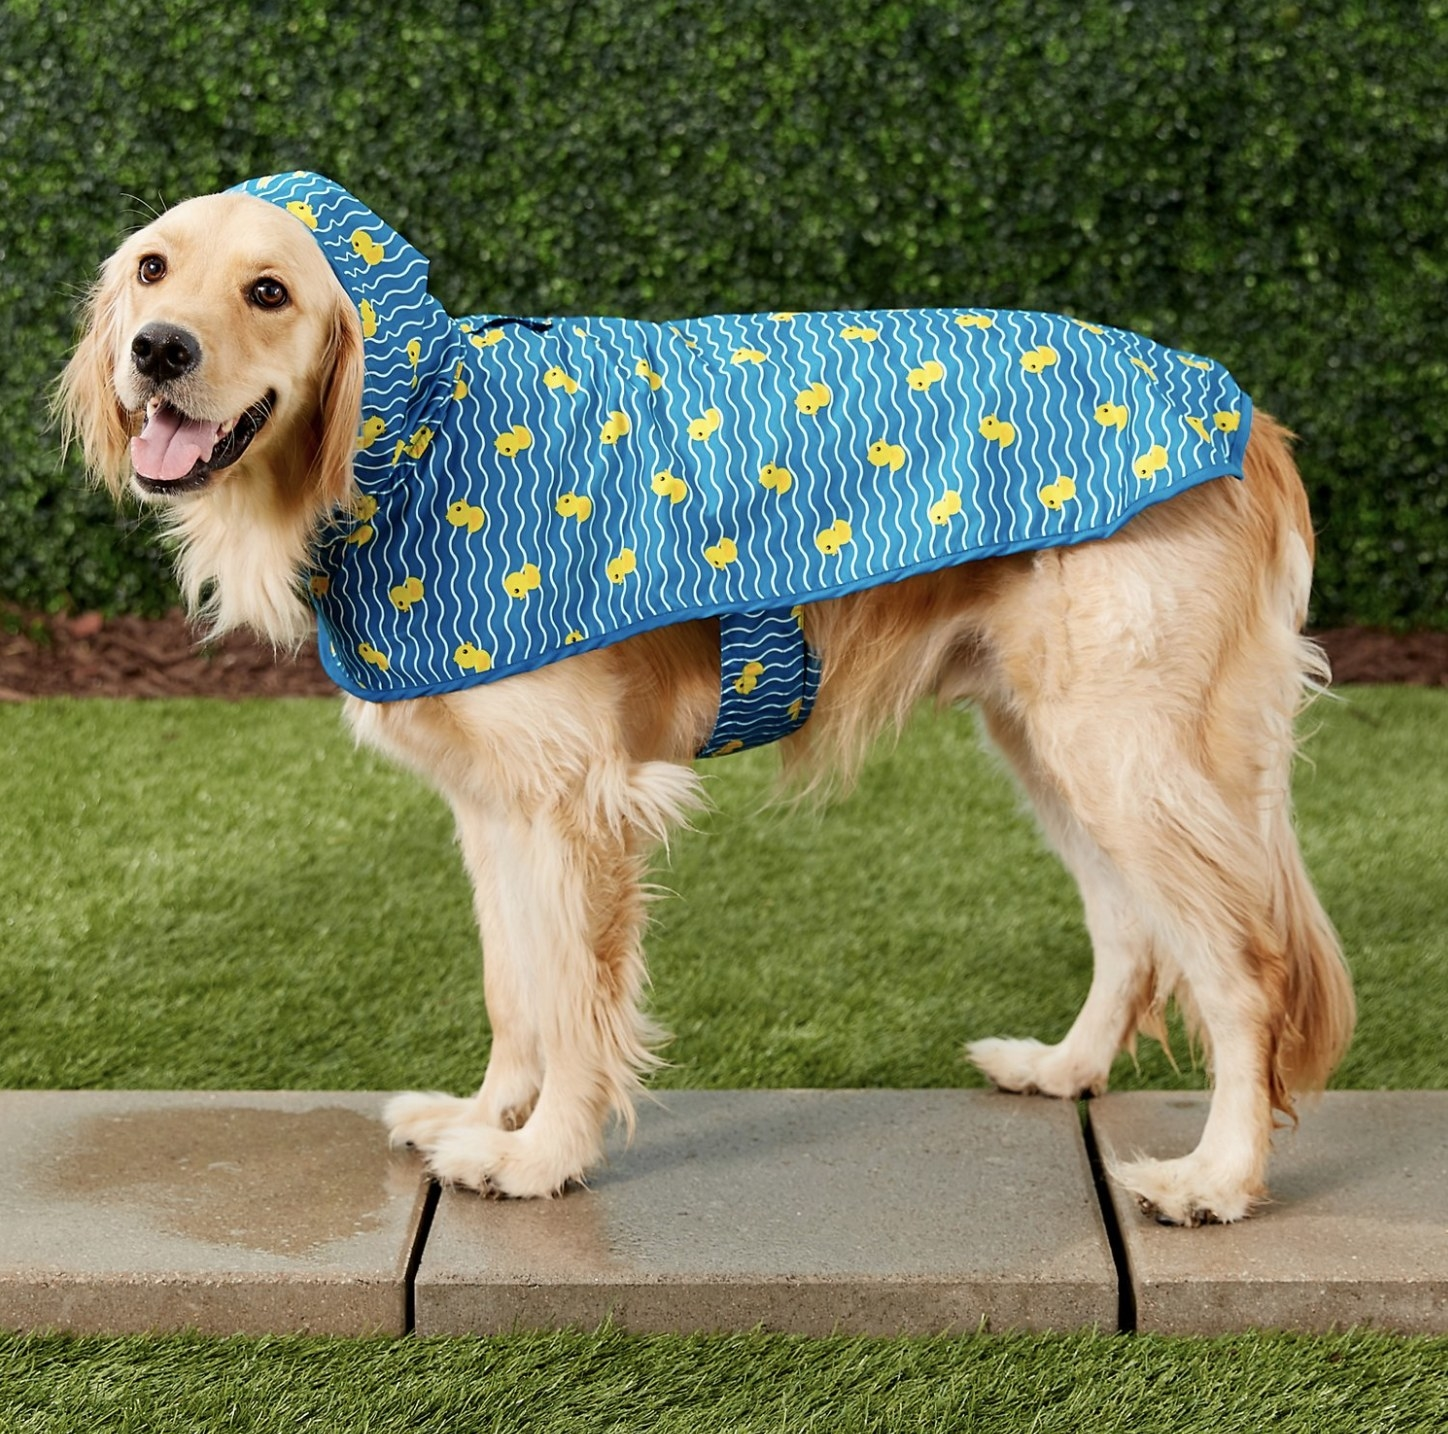 A dog wearing a blue rubber ducky raincoat